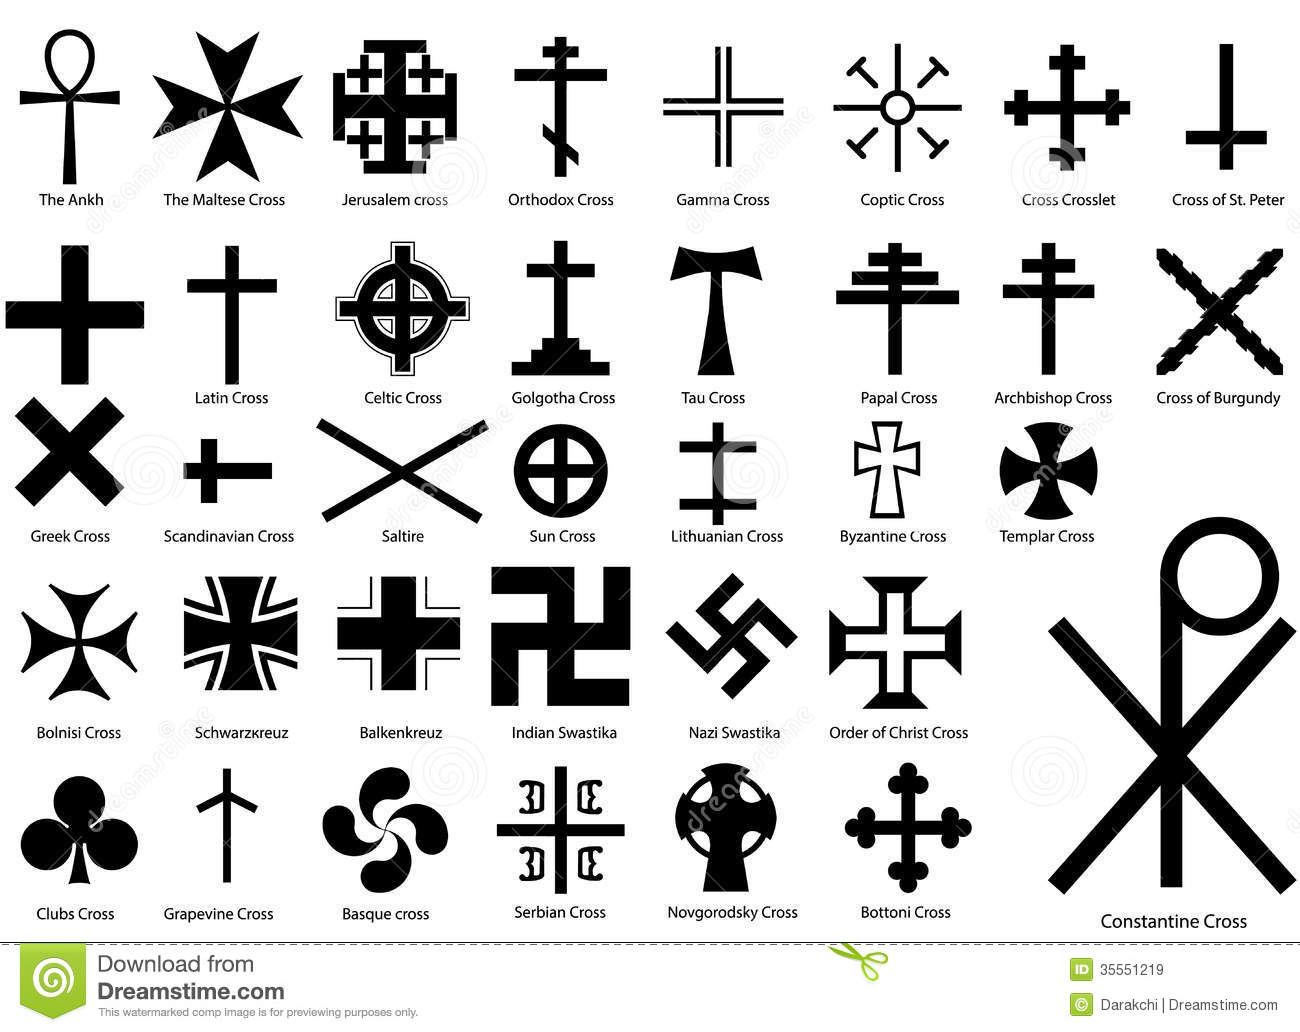 crosses-illustration-set-different-kind-isolated-white-background-each-cross-entitled-35551219